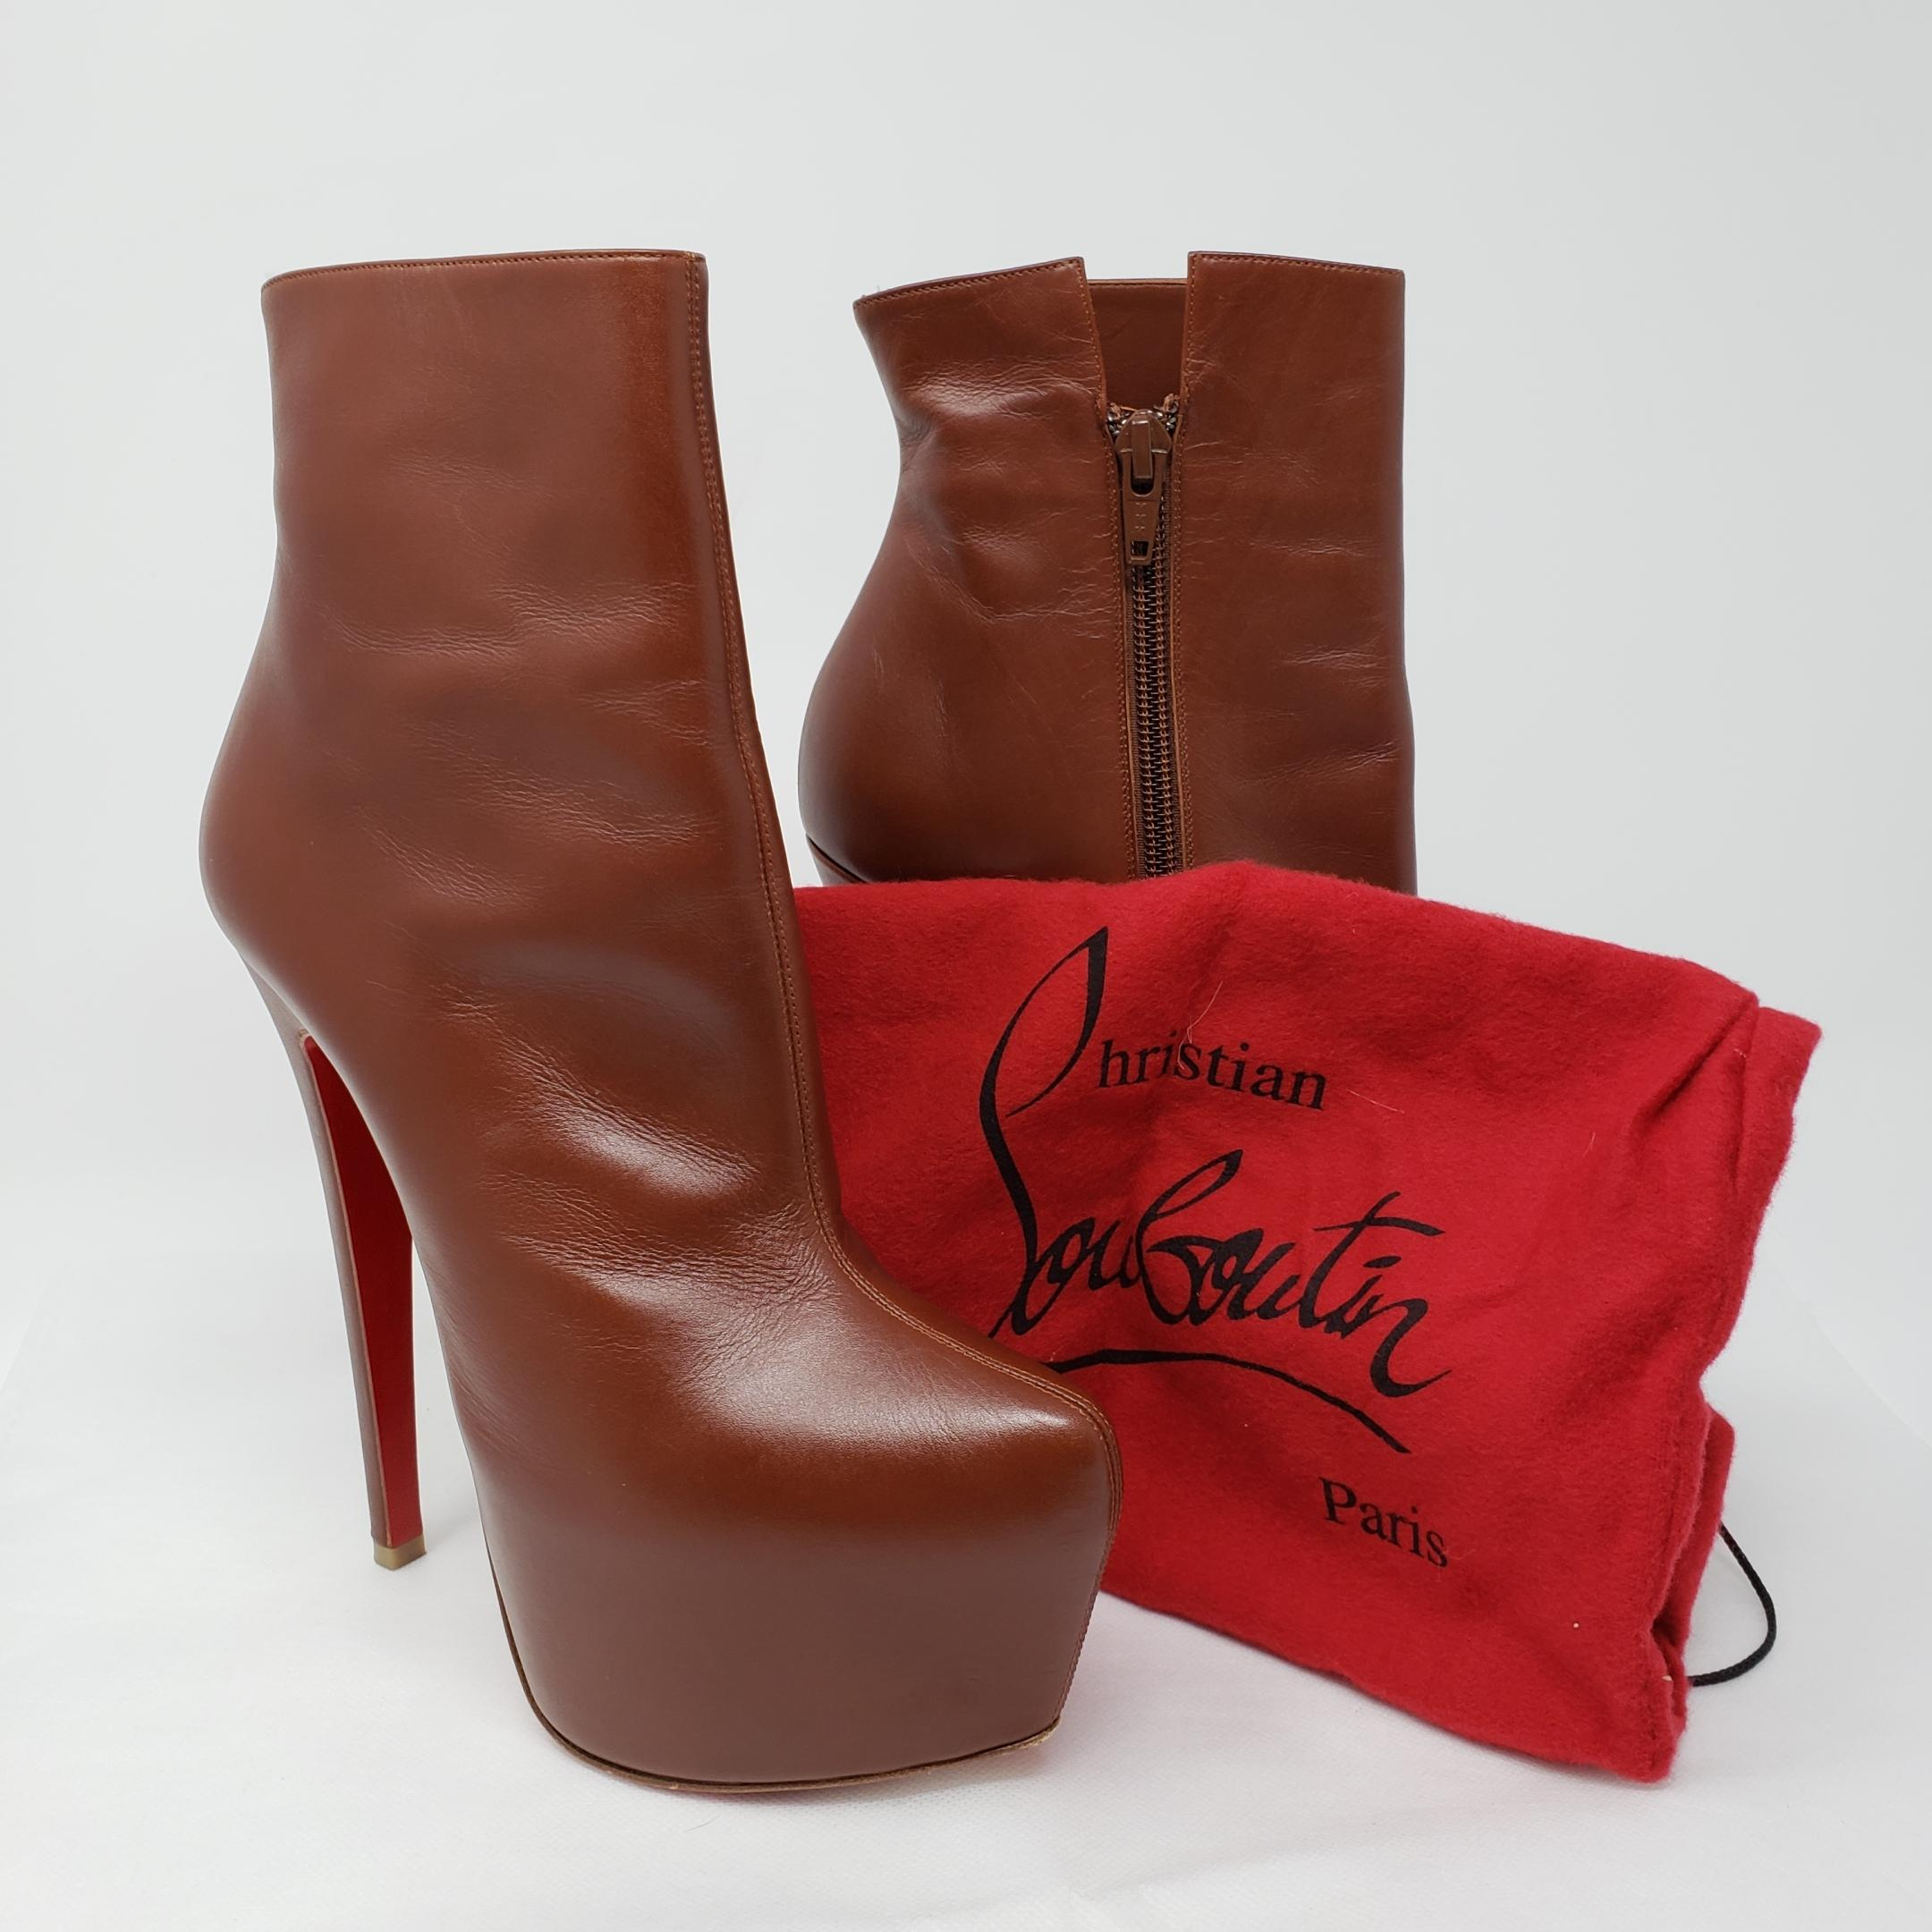 eb0591c52938 ... Christian Louboutin Brown Leather Leather Leather Daffodile Pointed-toe  Boots Booties Size EU 35 ...